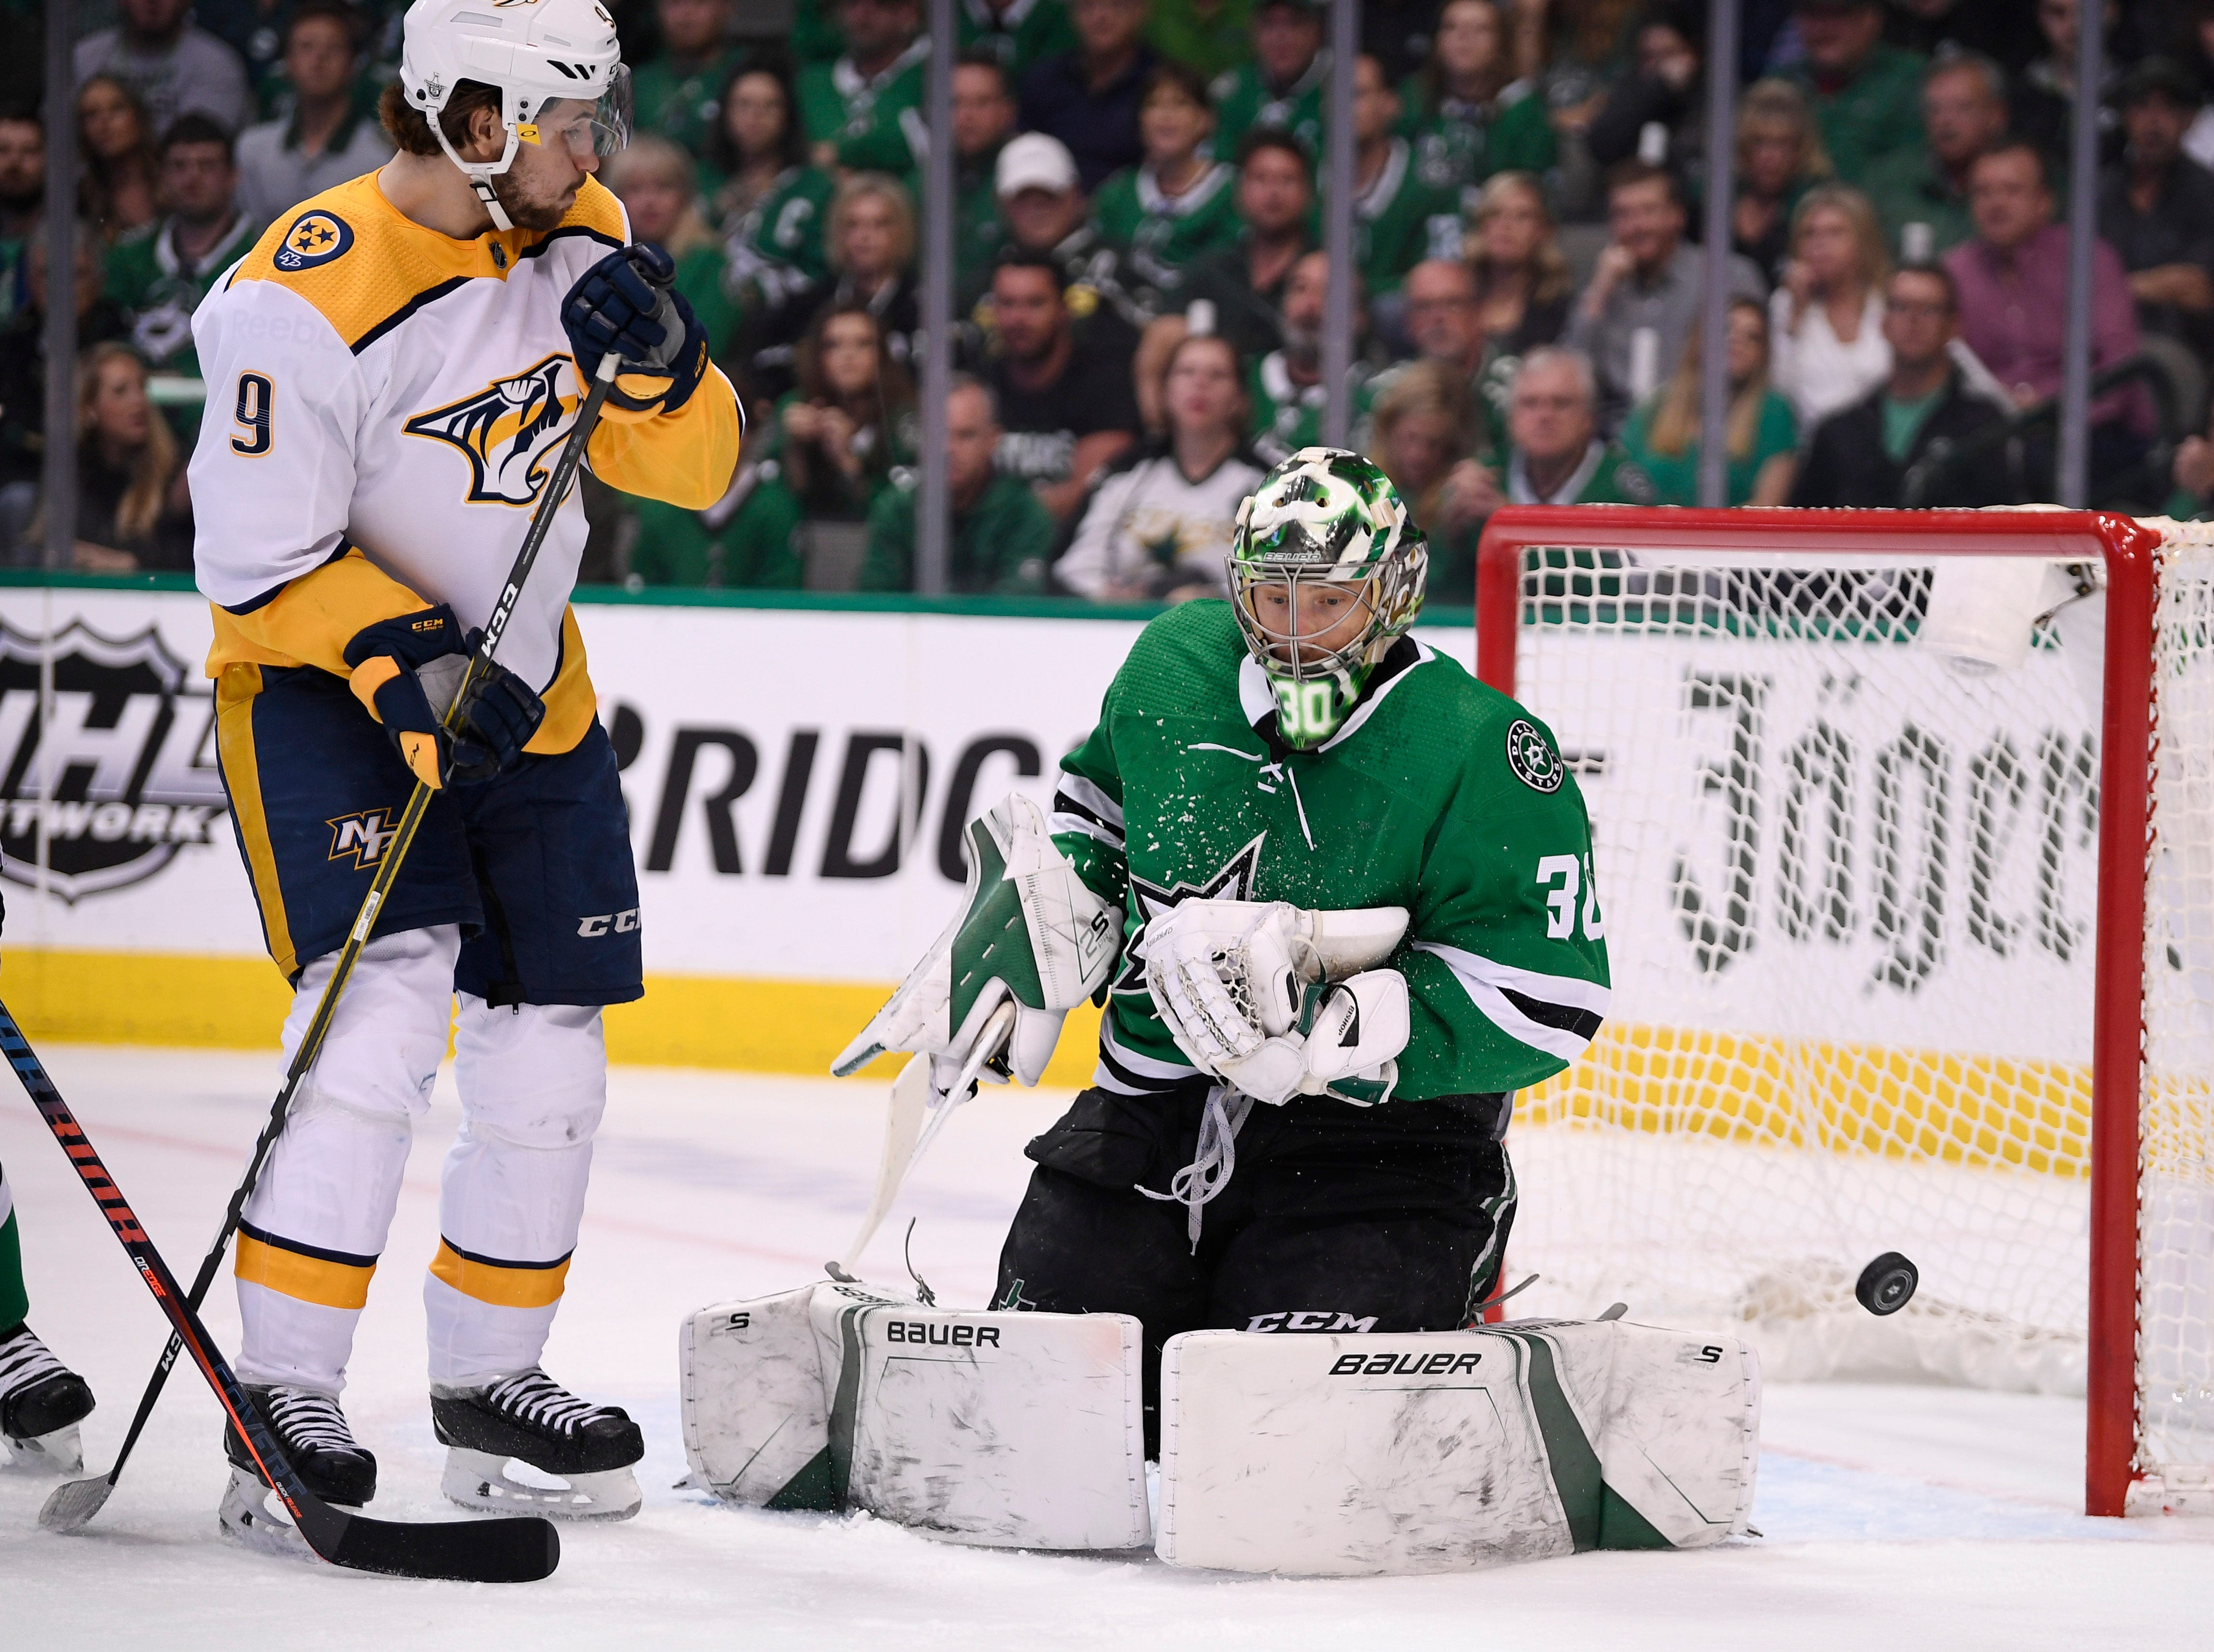 Dallas Stars goaltender Ben Bishop (30) defends against Nashville Predators left wing Filip Forsberg (9) during the first period of the divisional semifinal game at the American Airlines Center in Dallas, Texas, Monday, April 22, 2019.